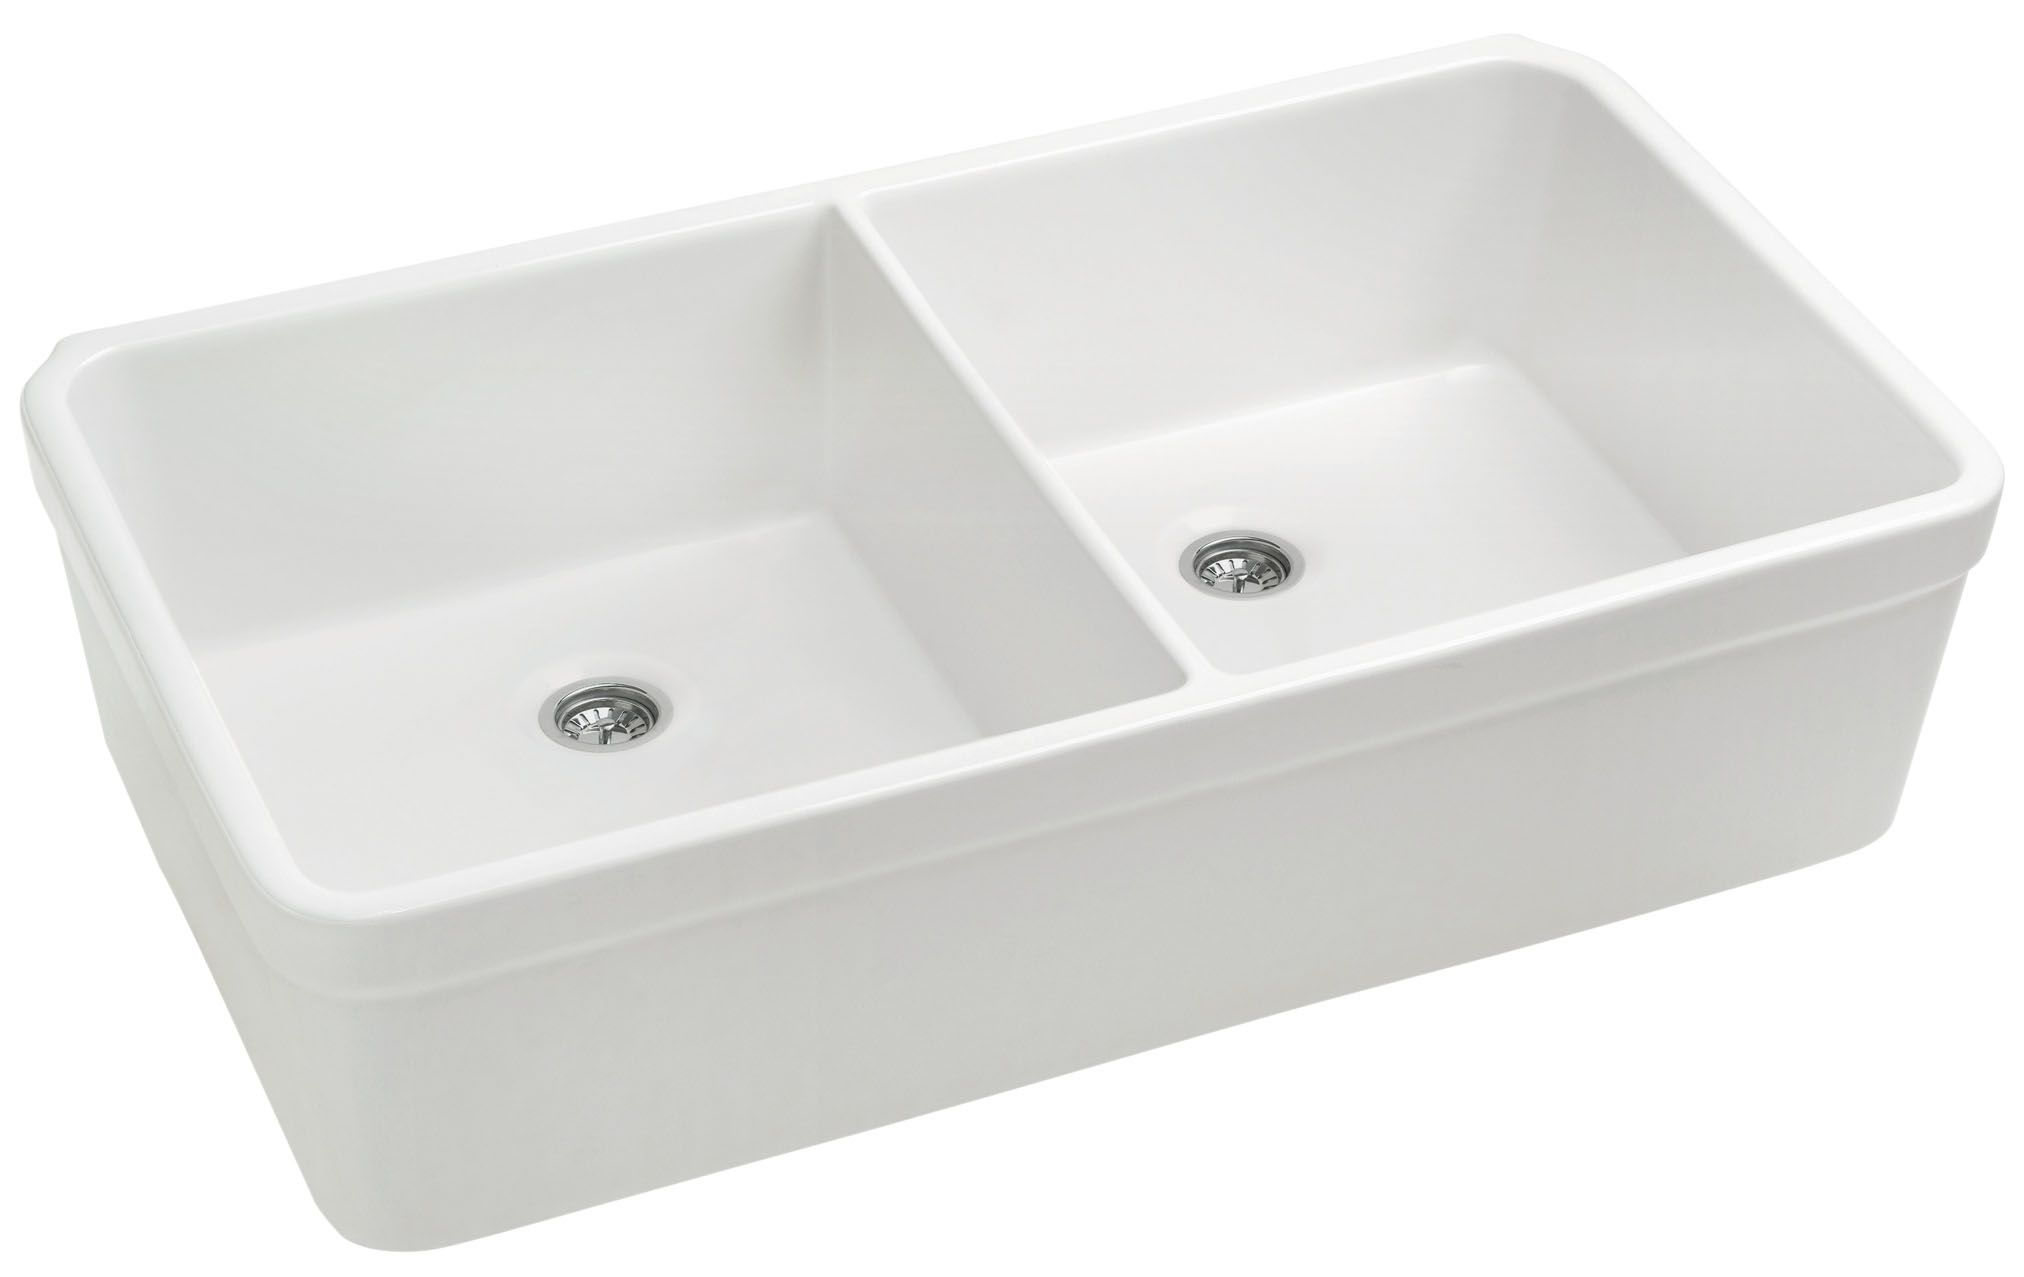 Whitehaus Whb5122 White Basichaus 32 Inch Double Bowl Fireclay Sink W A Smooth Front Apron A Decorative 2 Inch Lip 8 Inch Depth Double Bowl Kitchen Sink